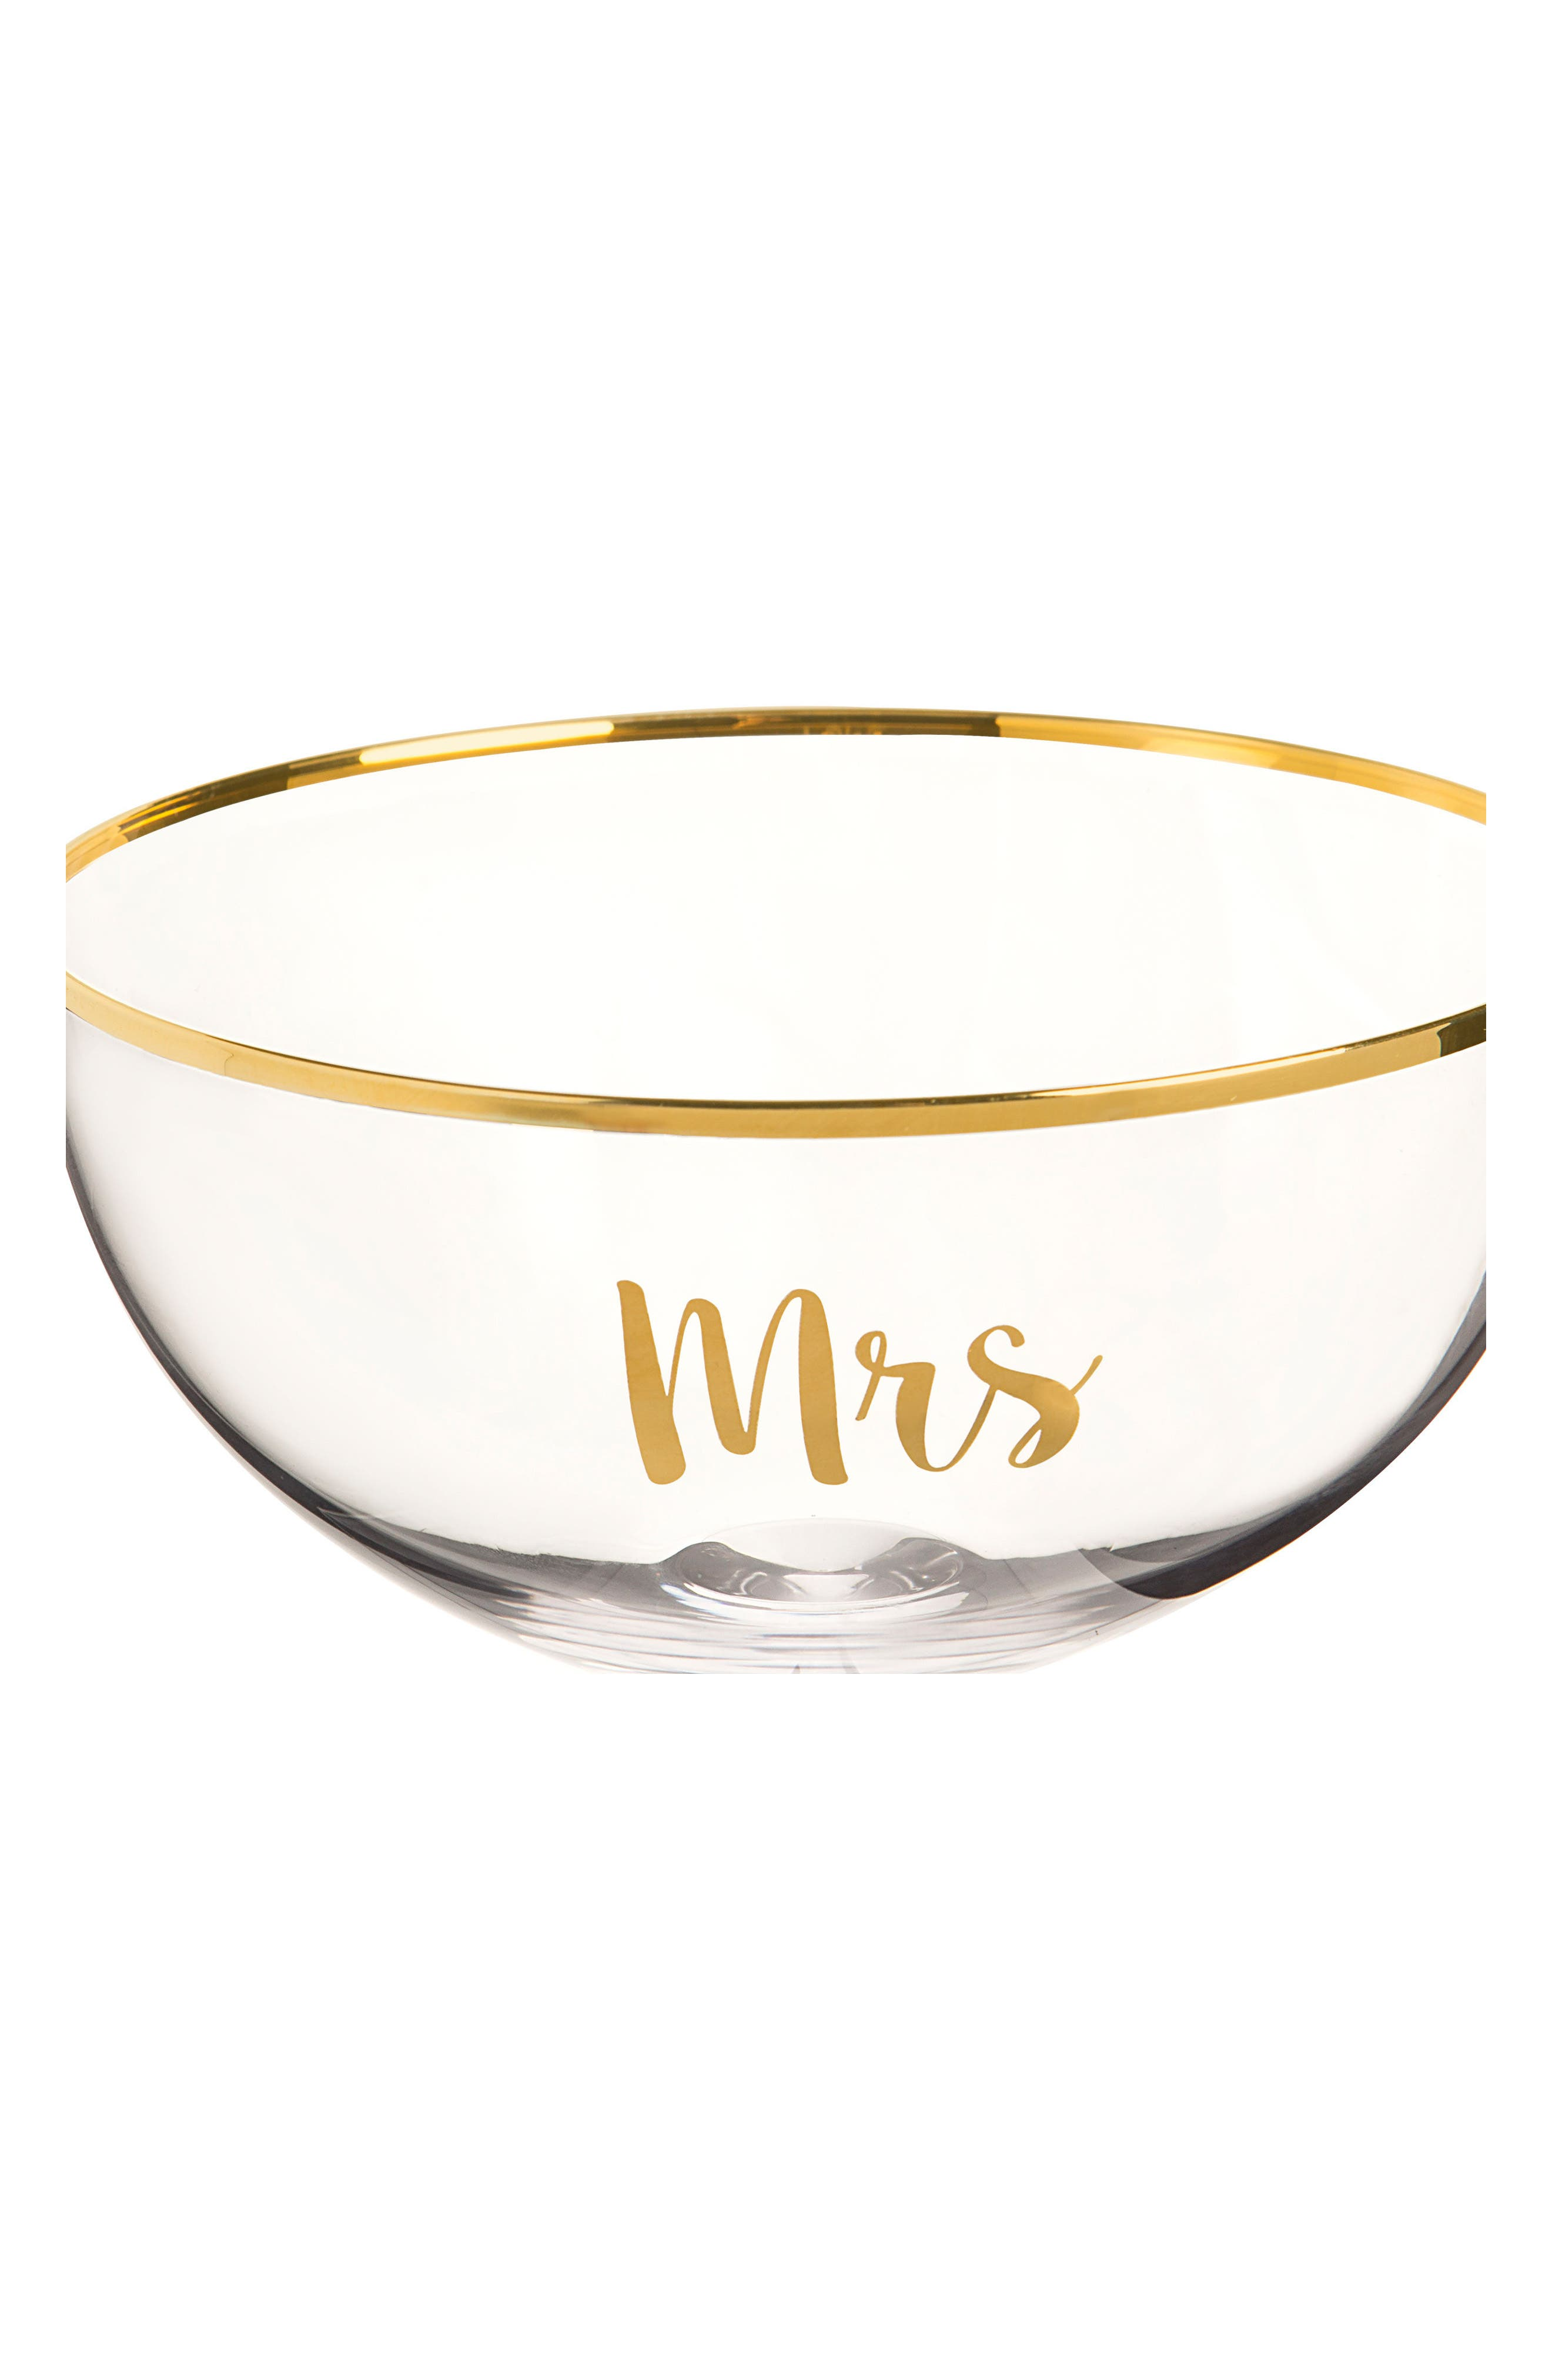 Mr. & Mrs. Set of 2 Champagne Coupe Toasting Glasses,                             Alternate thumbnail 3, color,                             Gold